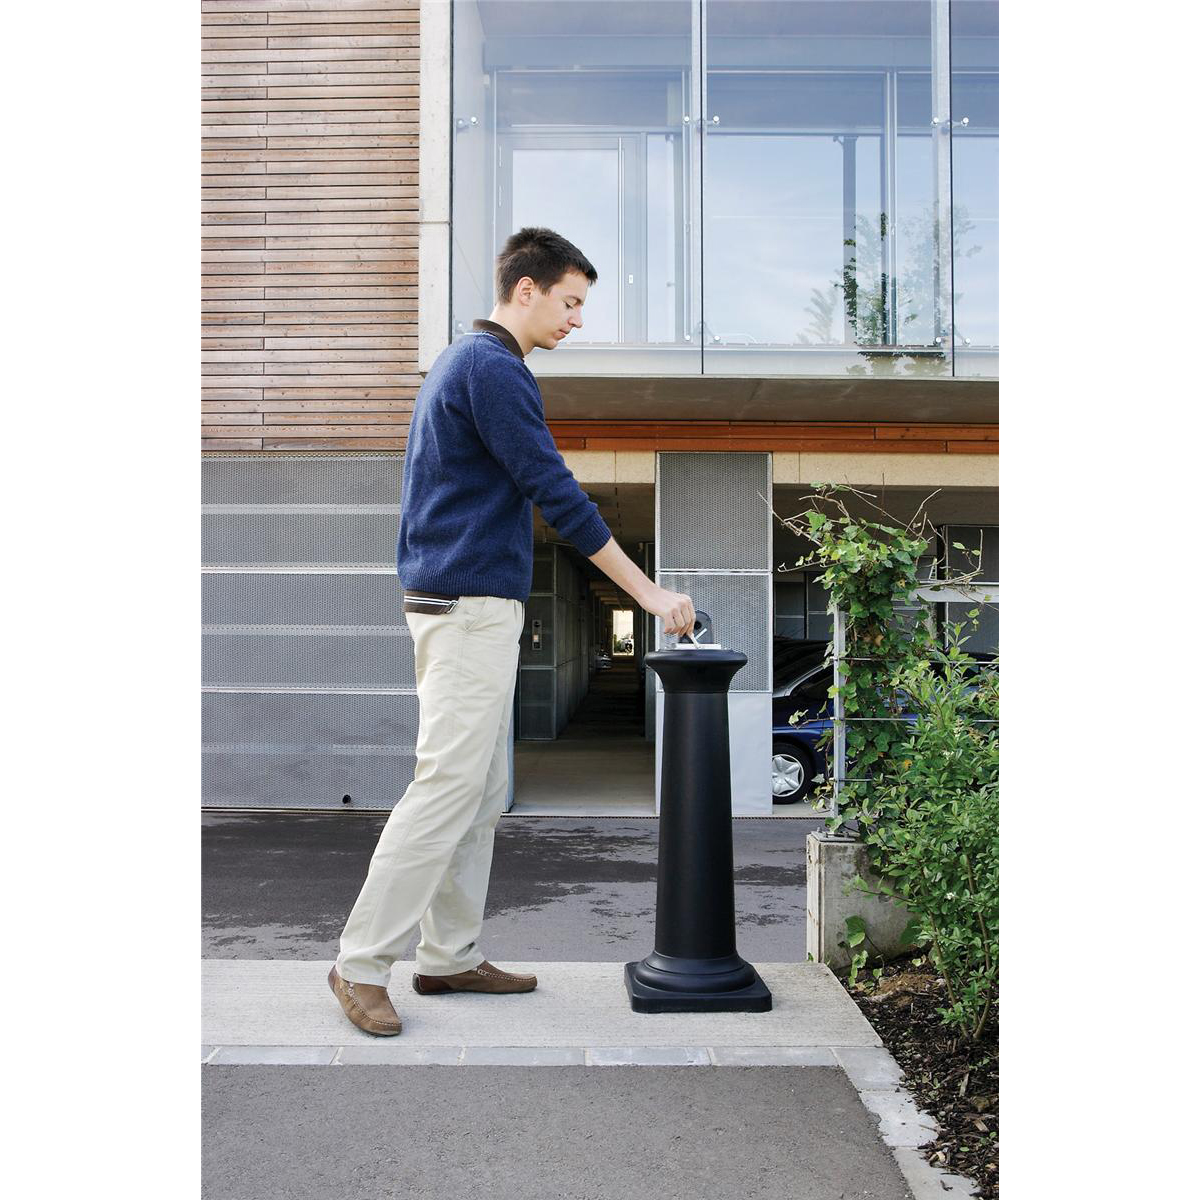 Rubbermaid Ash Bin Free-standing Capacity of 600 Butts 330x330x975mm Black Ref FG9W3000BLA